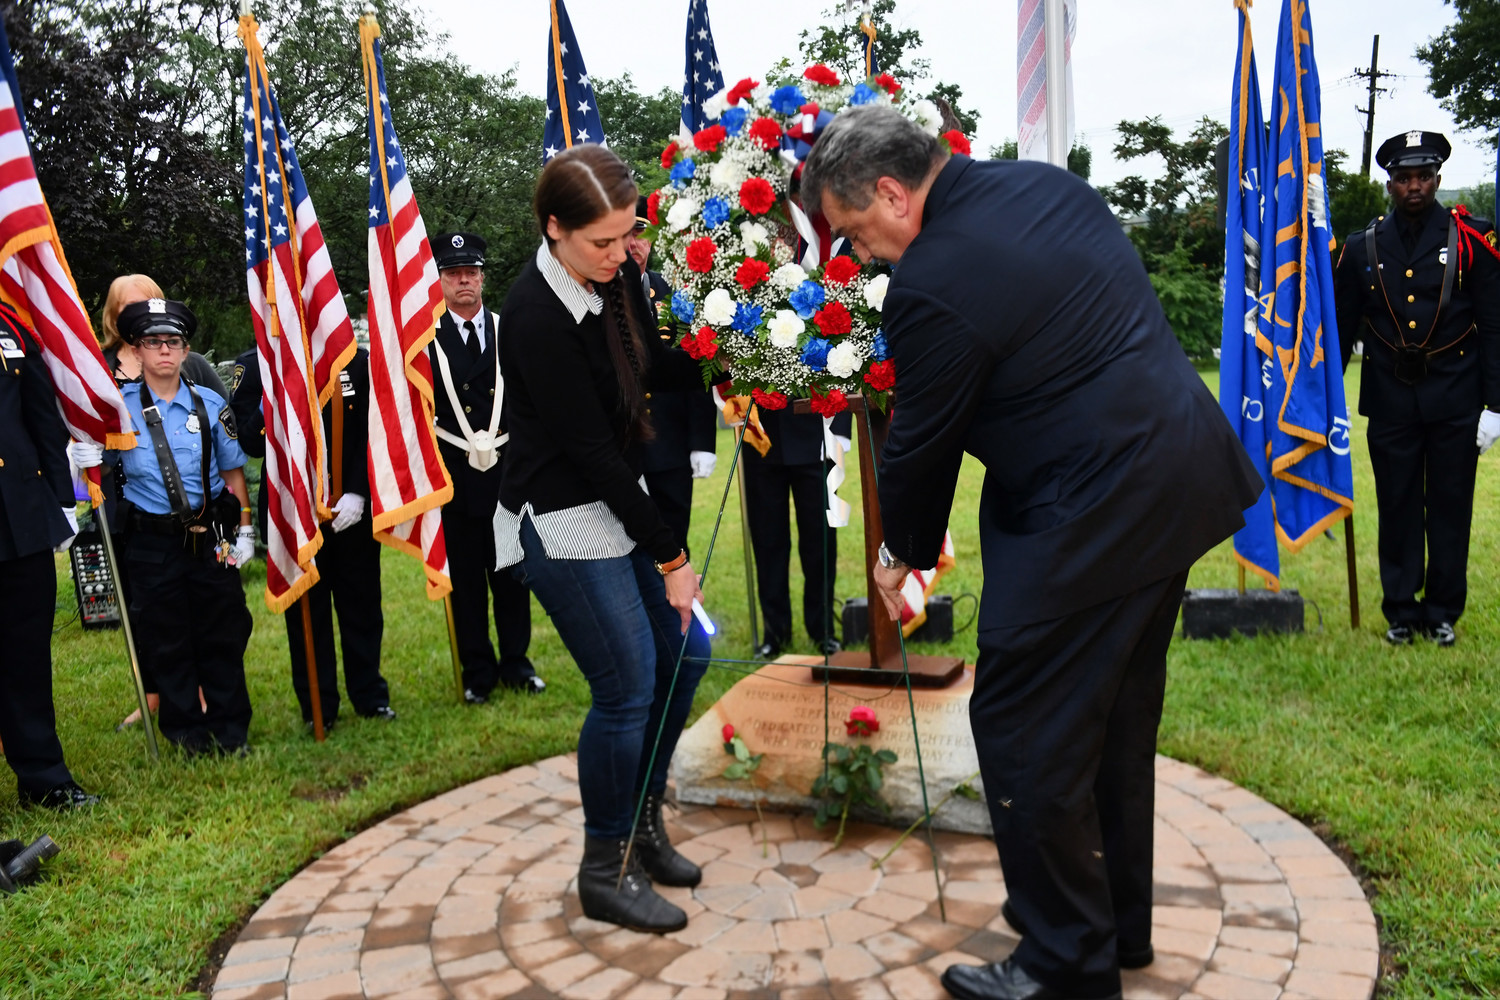 Mayor Tim Tenke and Michelle Puckett-Formolo, daughter of one of the four 9/11 victims from Glen Cove, laid a wreath at the memorial.